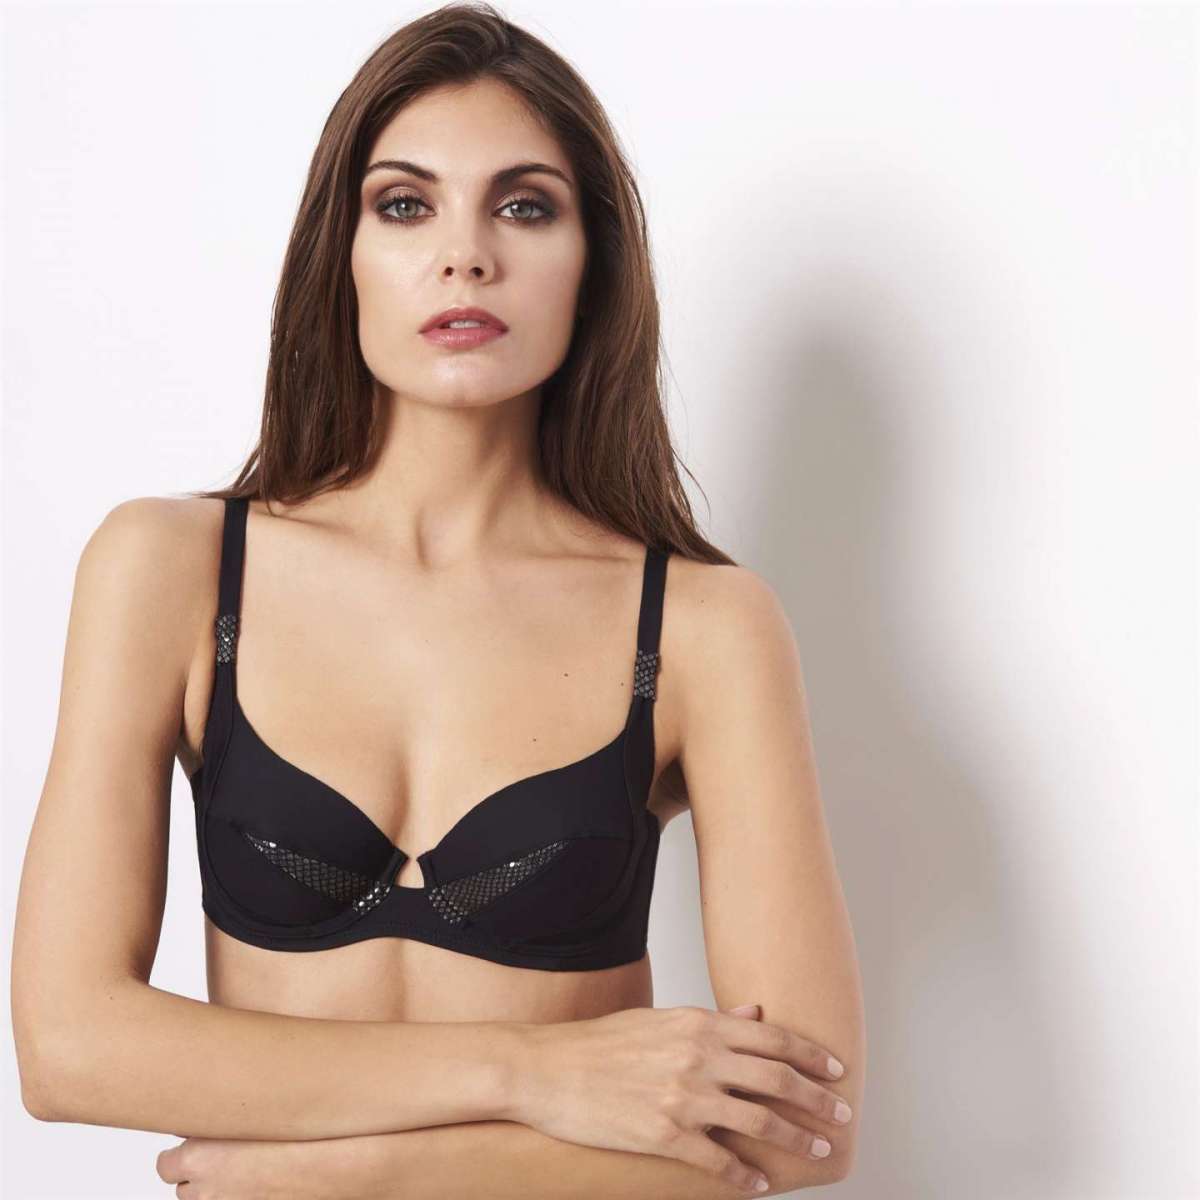 Bikini top nero con coppe imbottite differenziate Yamamay a 39,95 euro